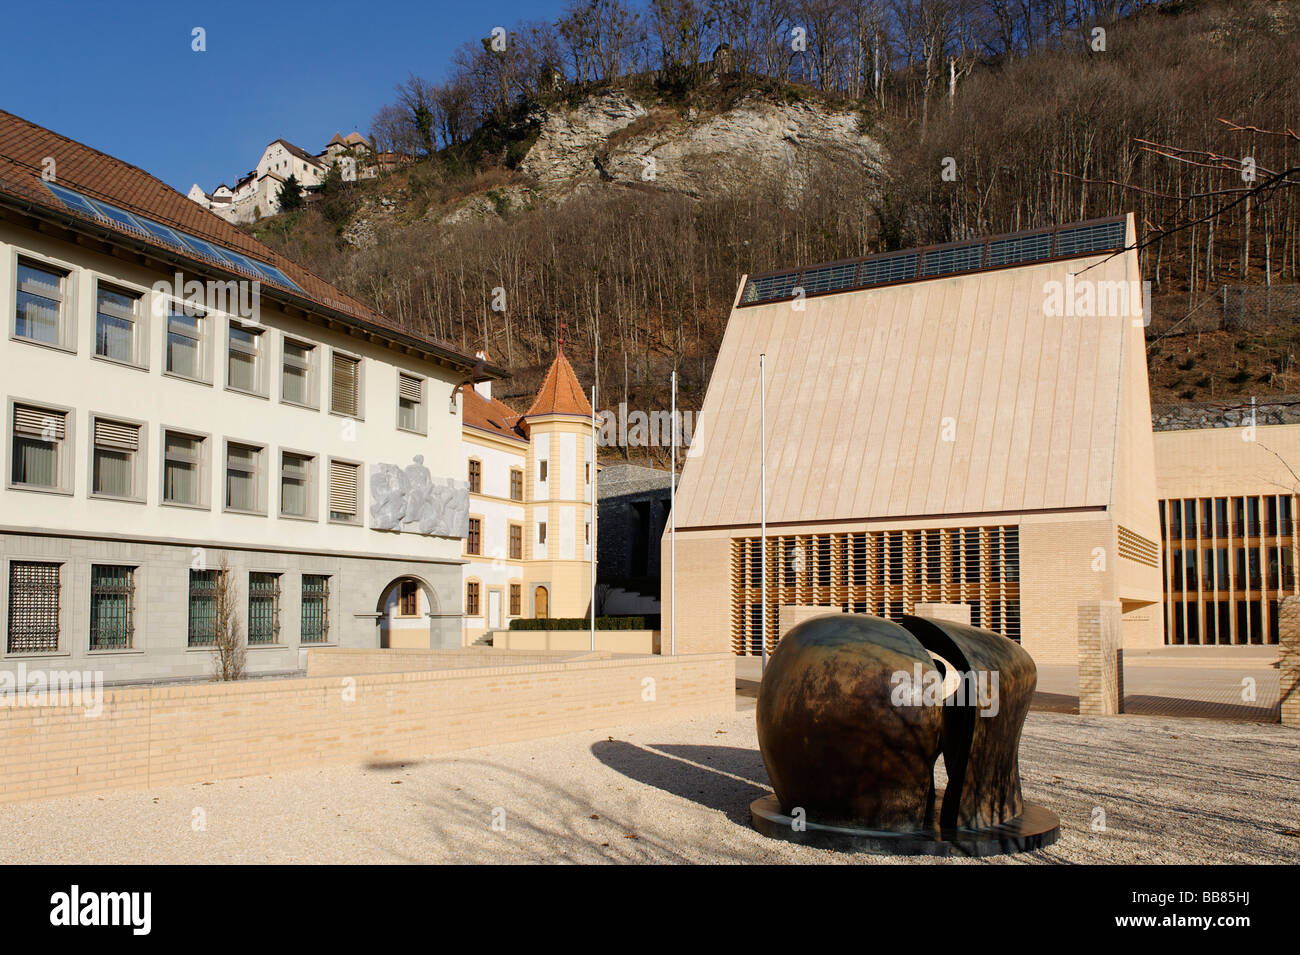 Government building, Vaduz, Liechtenstein principality, Europe - Stock Image